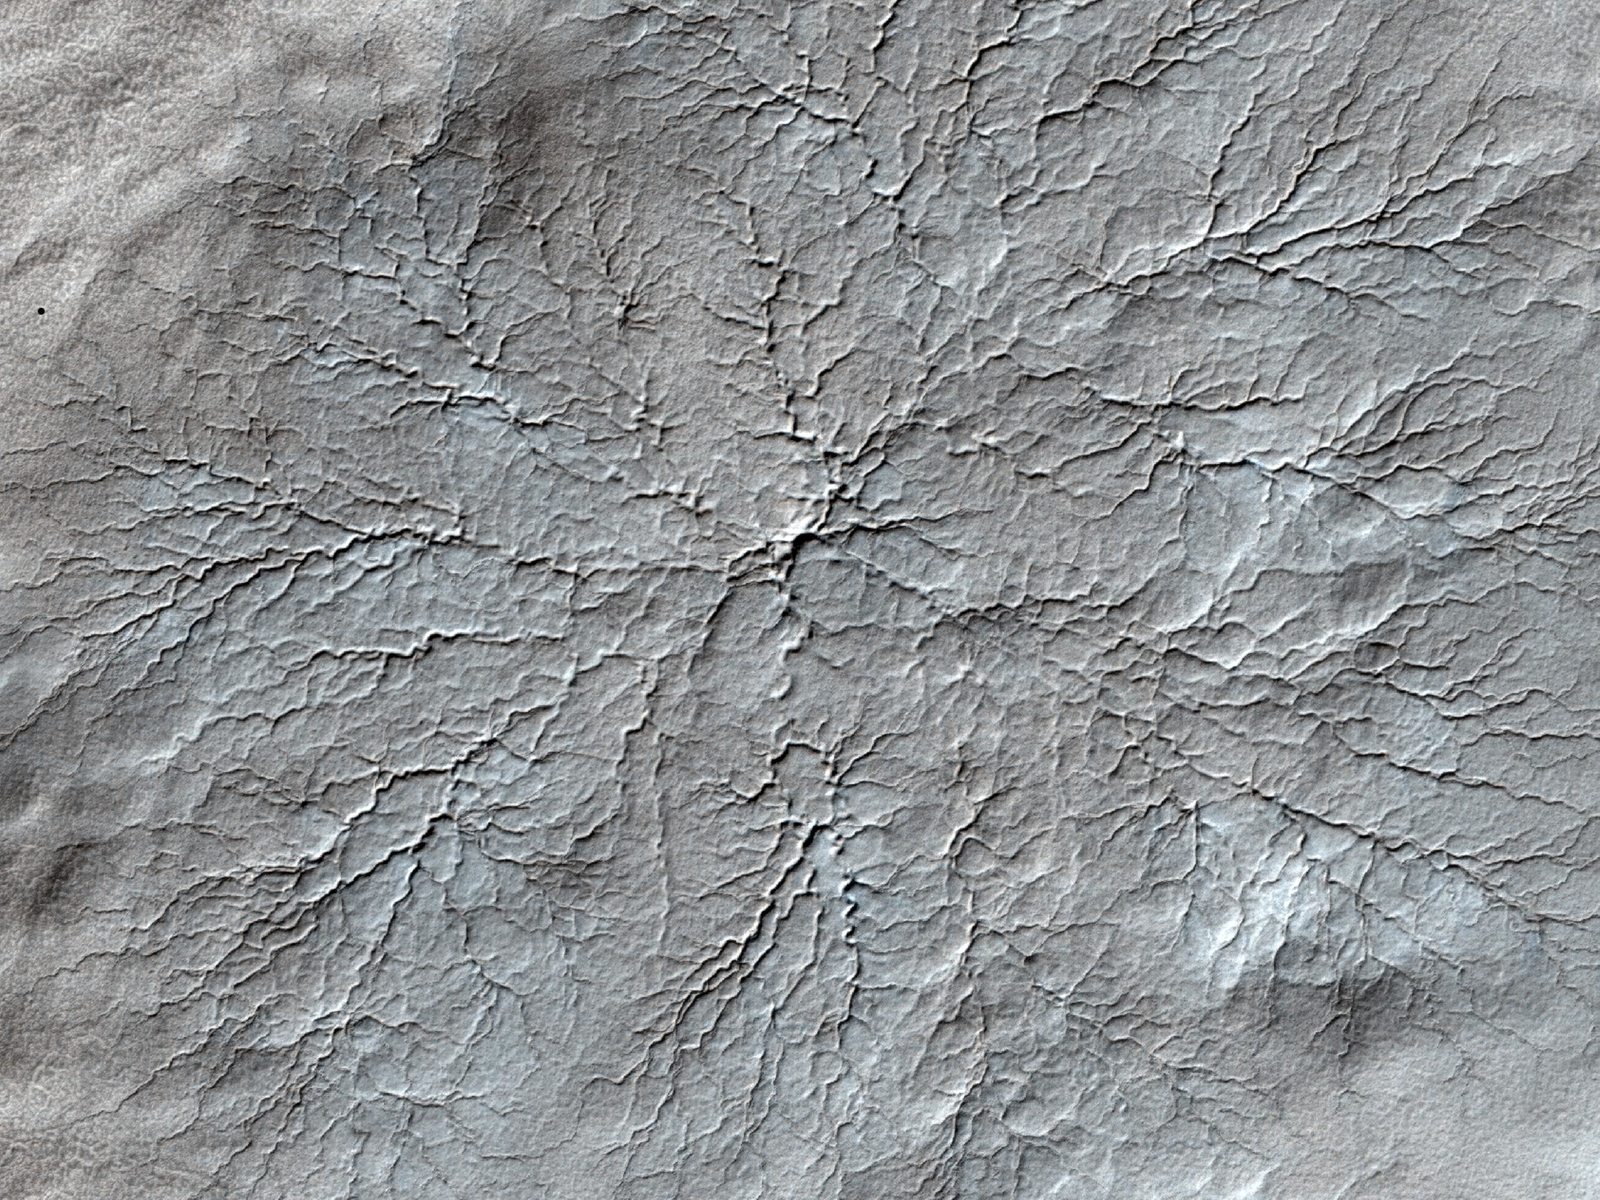 This HiRISE image shows erosional features formed by seasonal frost near the south pole of Mars.